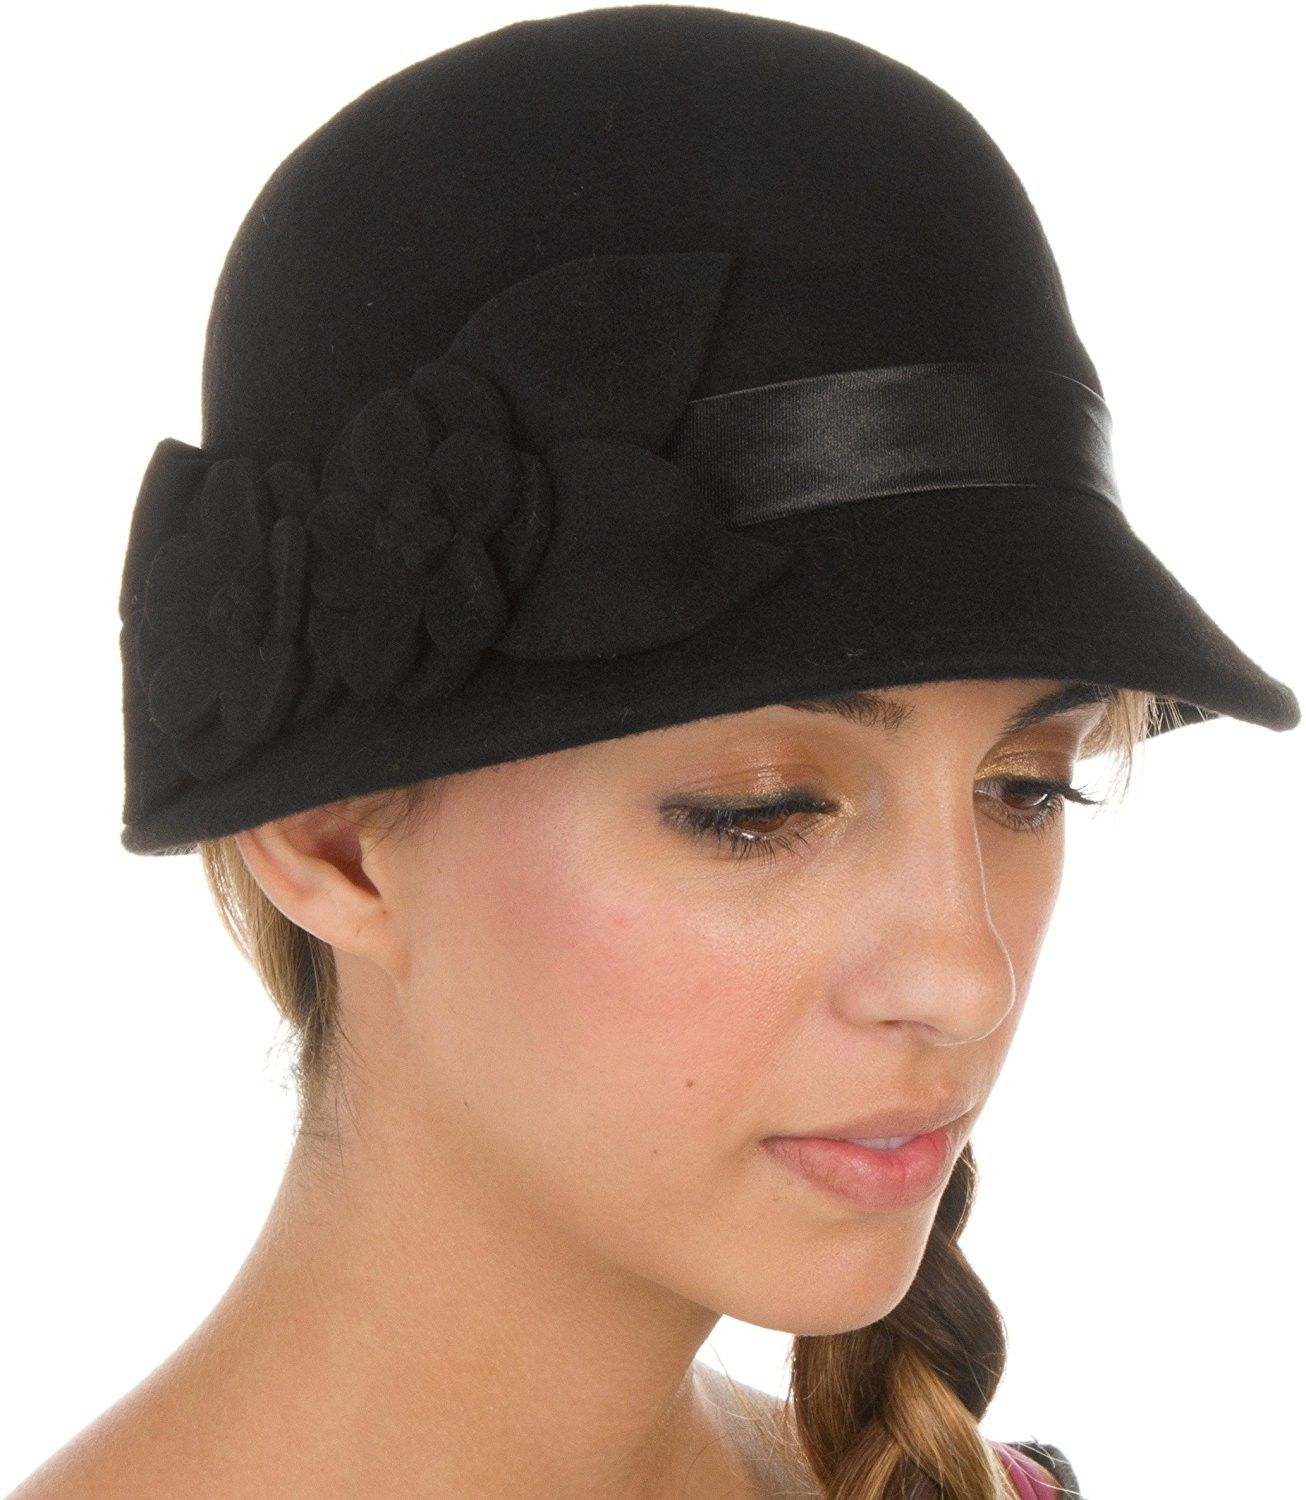 Black Vintage Style Felt Hat accented with flower